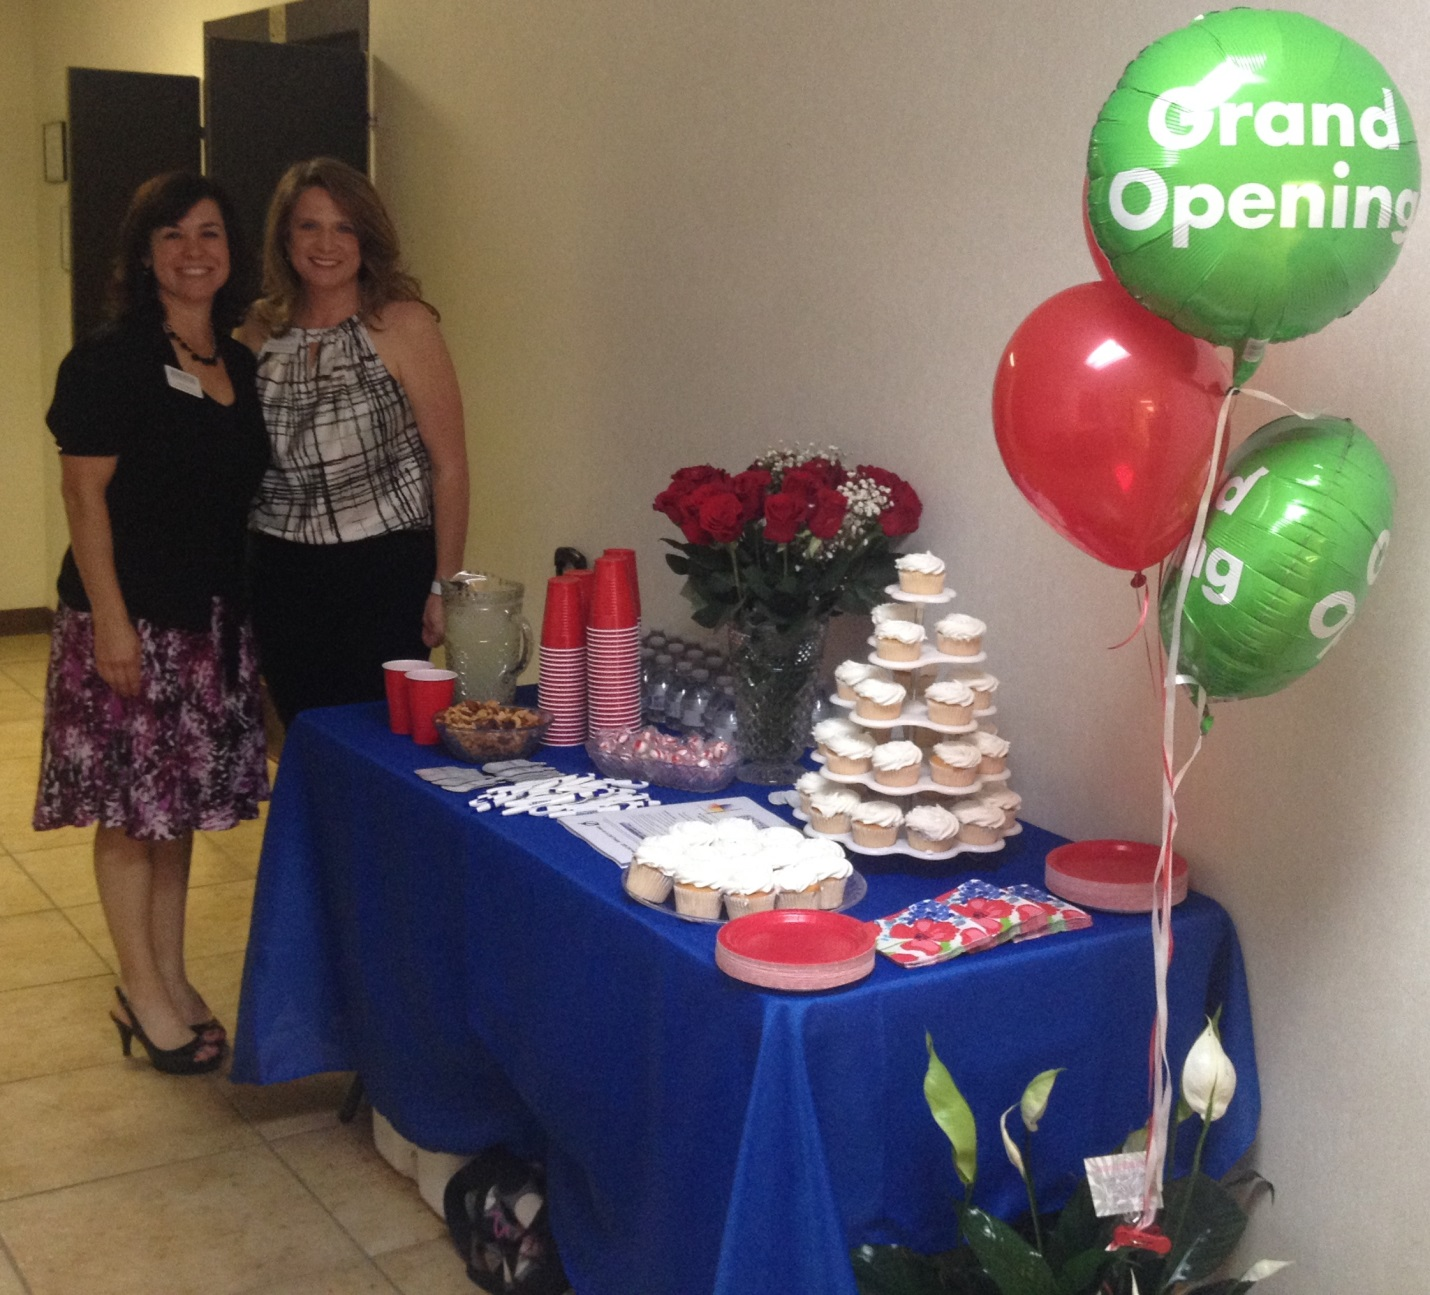 SPS employees Tess Davis, director of business development, and Wendy Kallaher, director of clinical support, attended the open house.